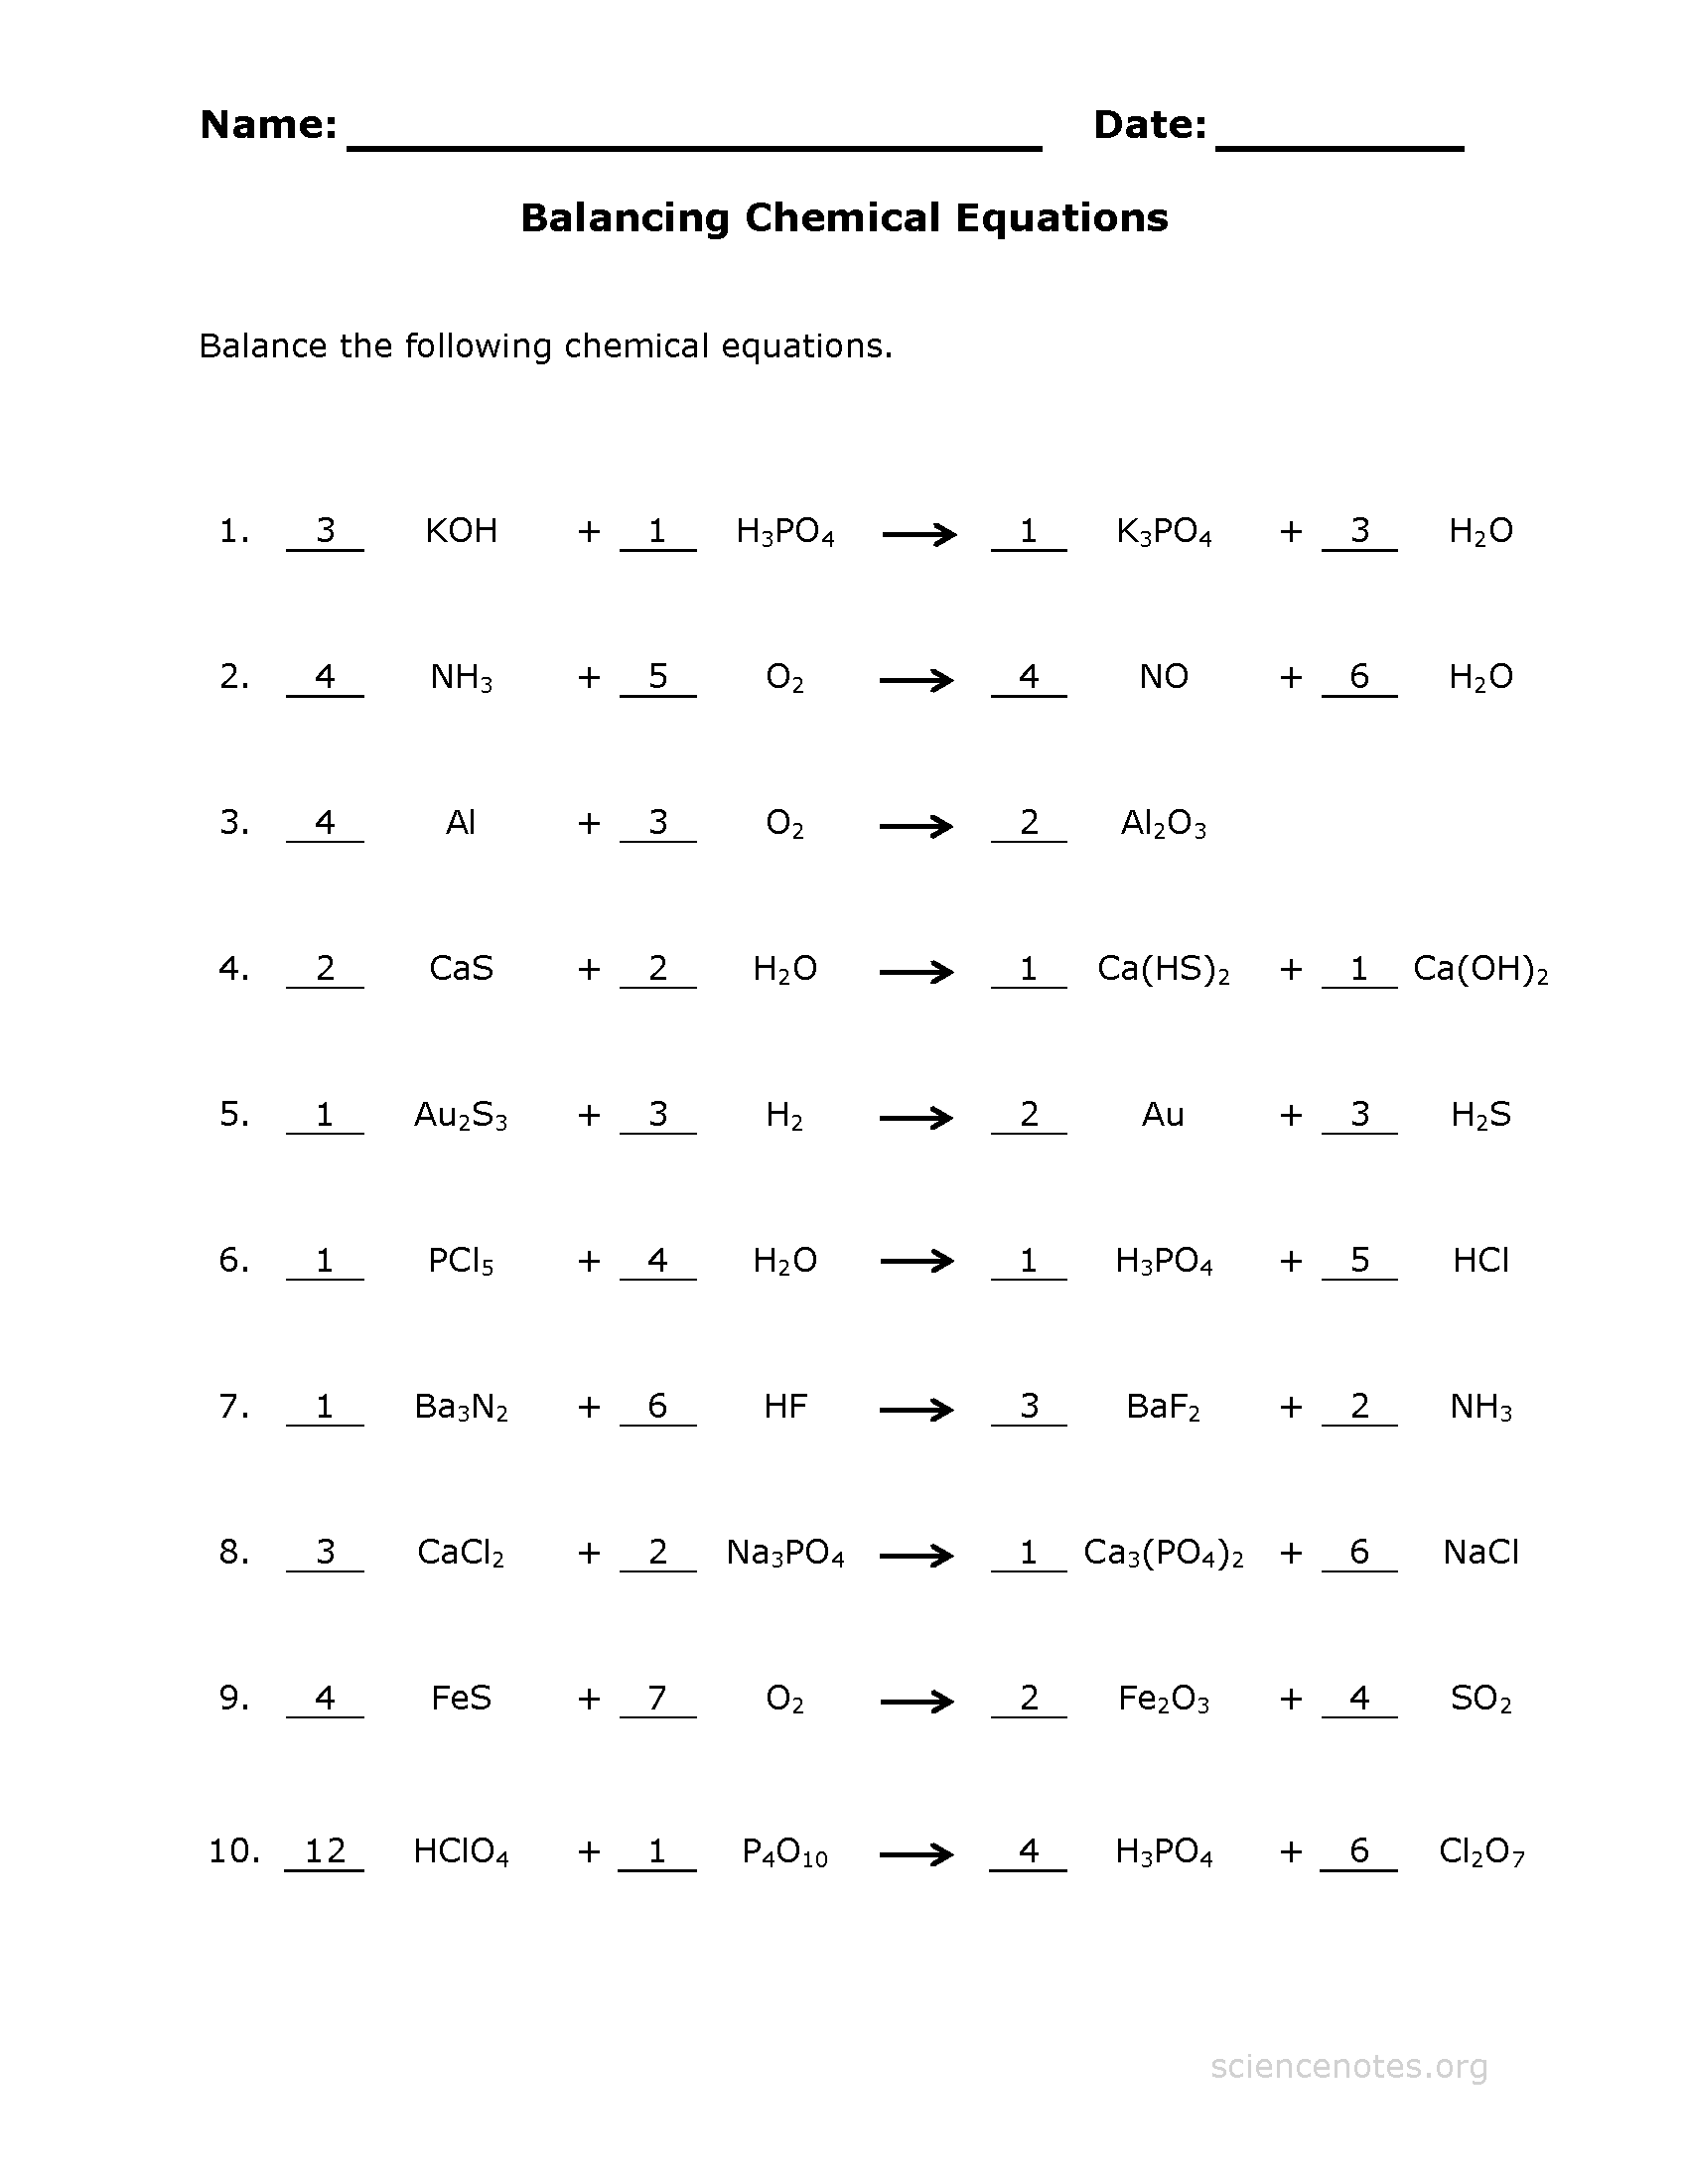 Worksheets Balancing Equations Worksheet Answers balancing chemical equations practice sheet a pdf of the answer key is also available here if youd just like to check your answers